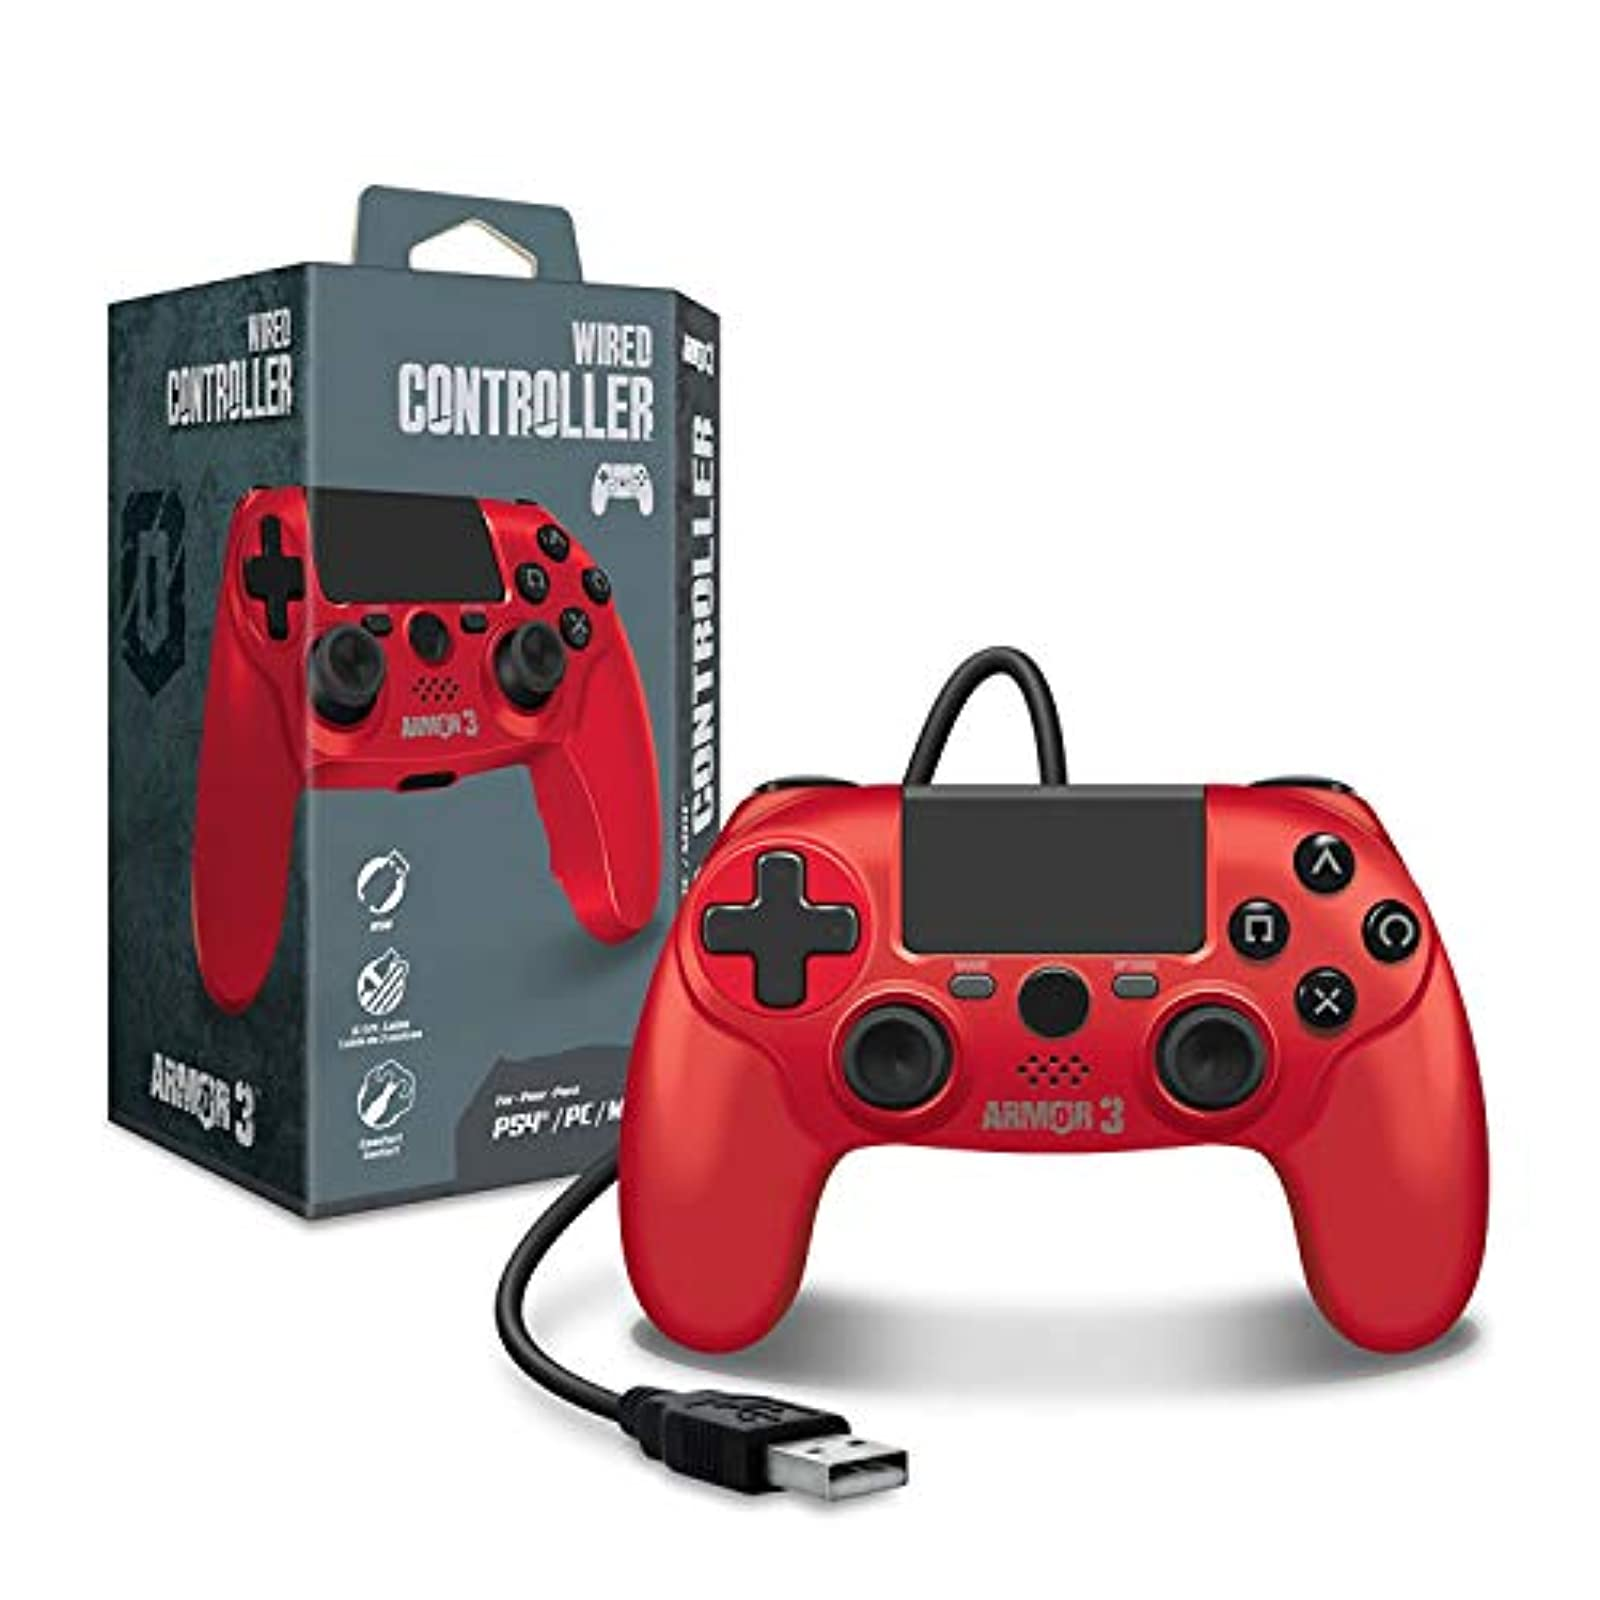 Armor3 Wired Game Controller For PS4/ PC/ MAC Red For PlayStation 4